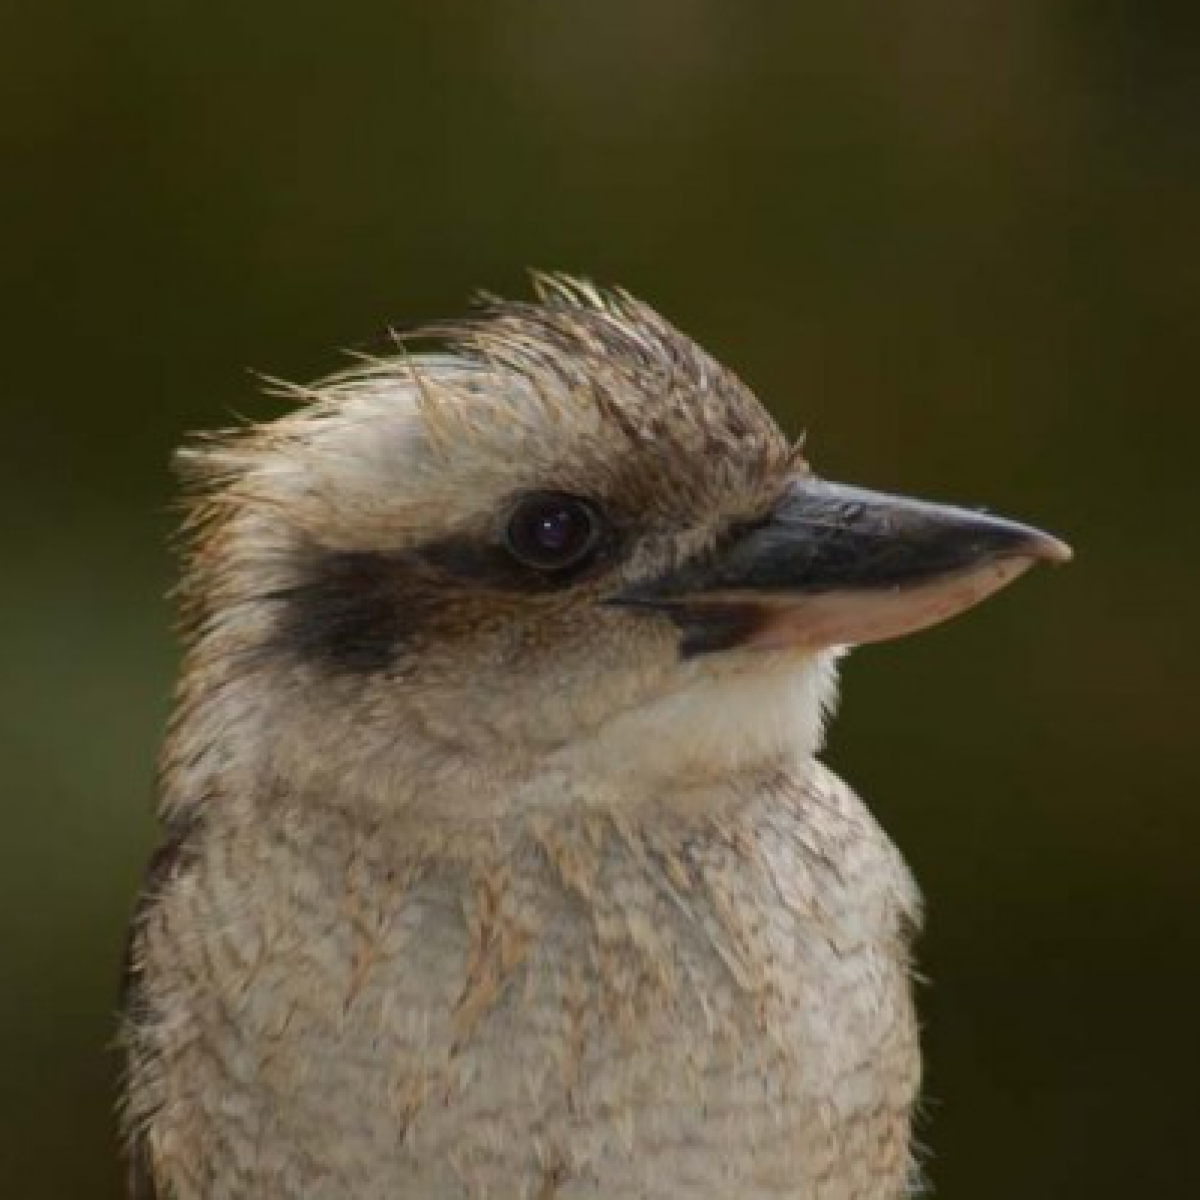 521 Laughing Kookaburra